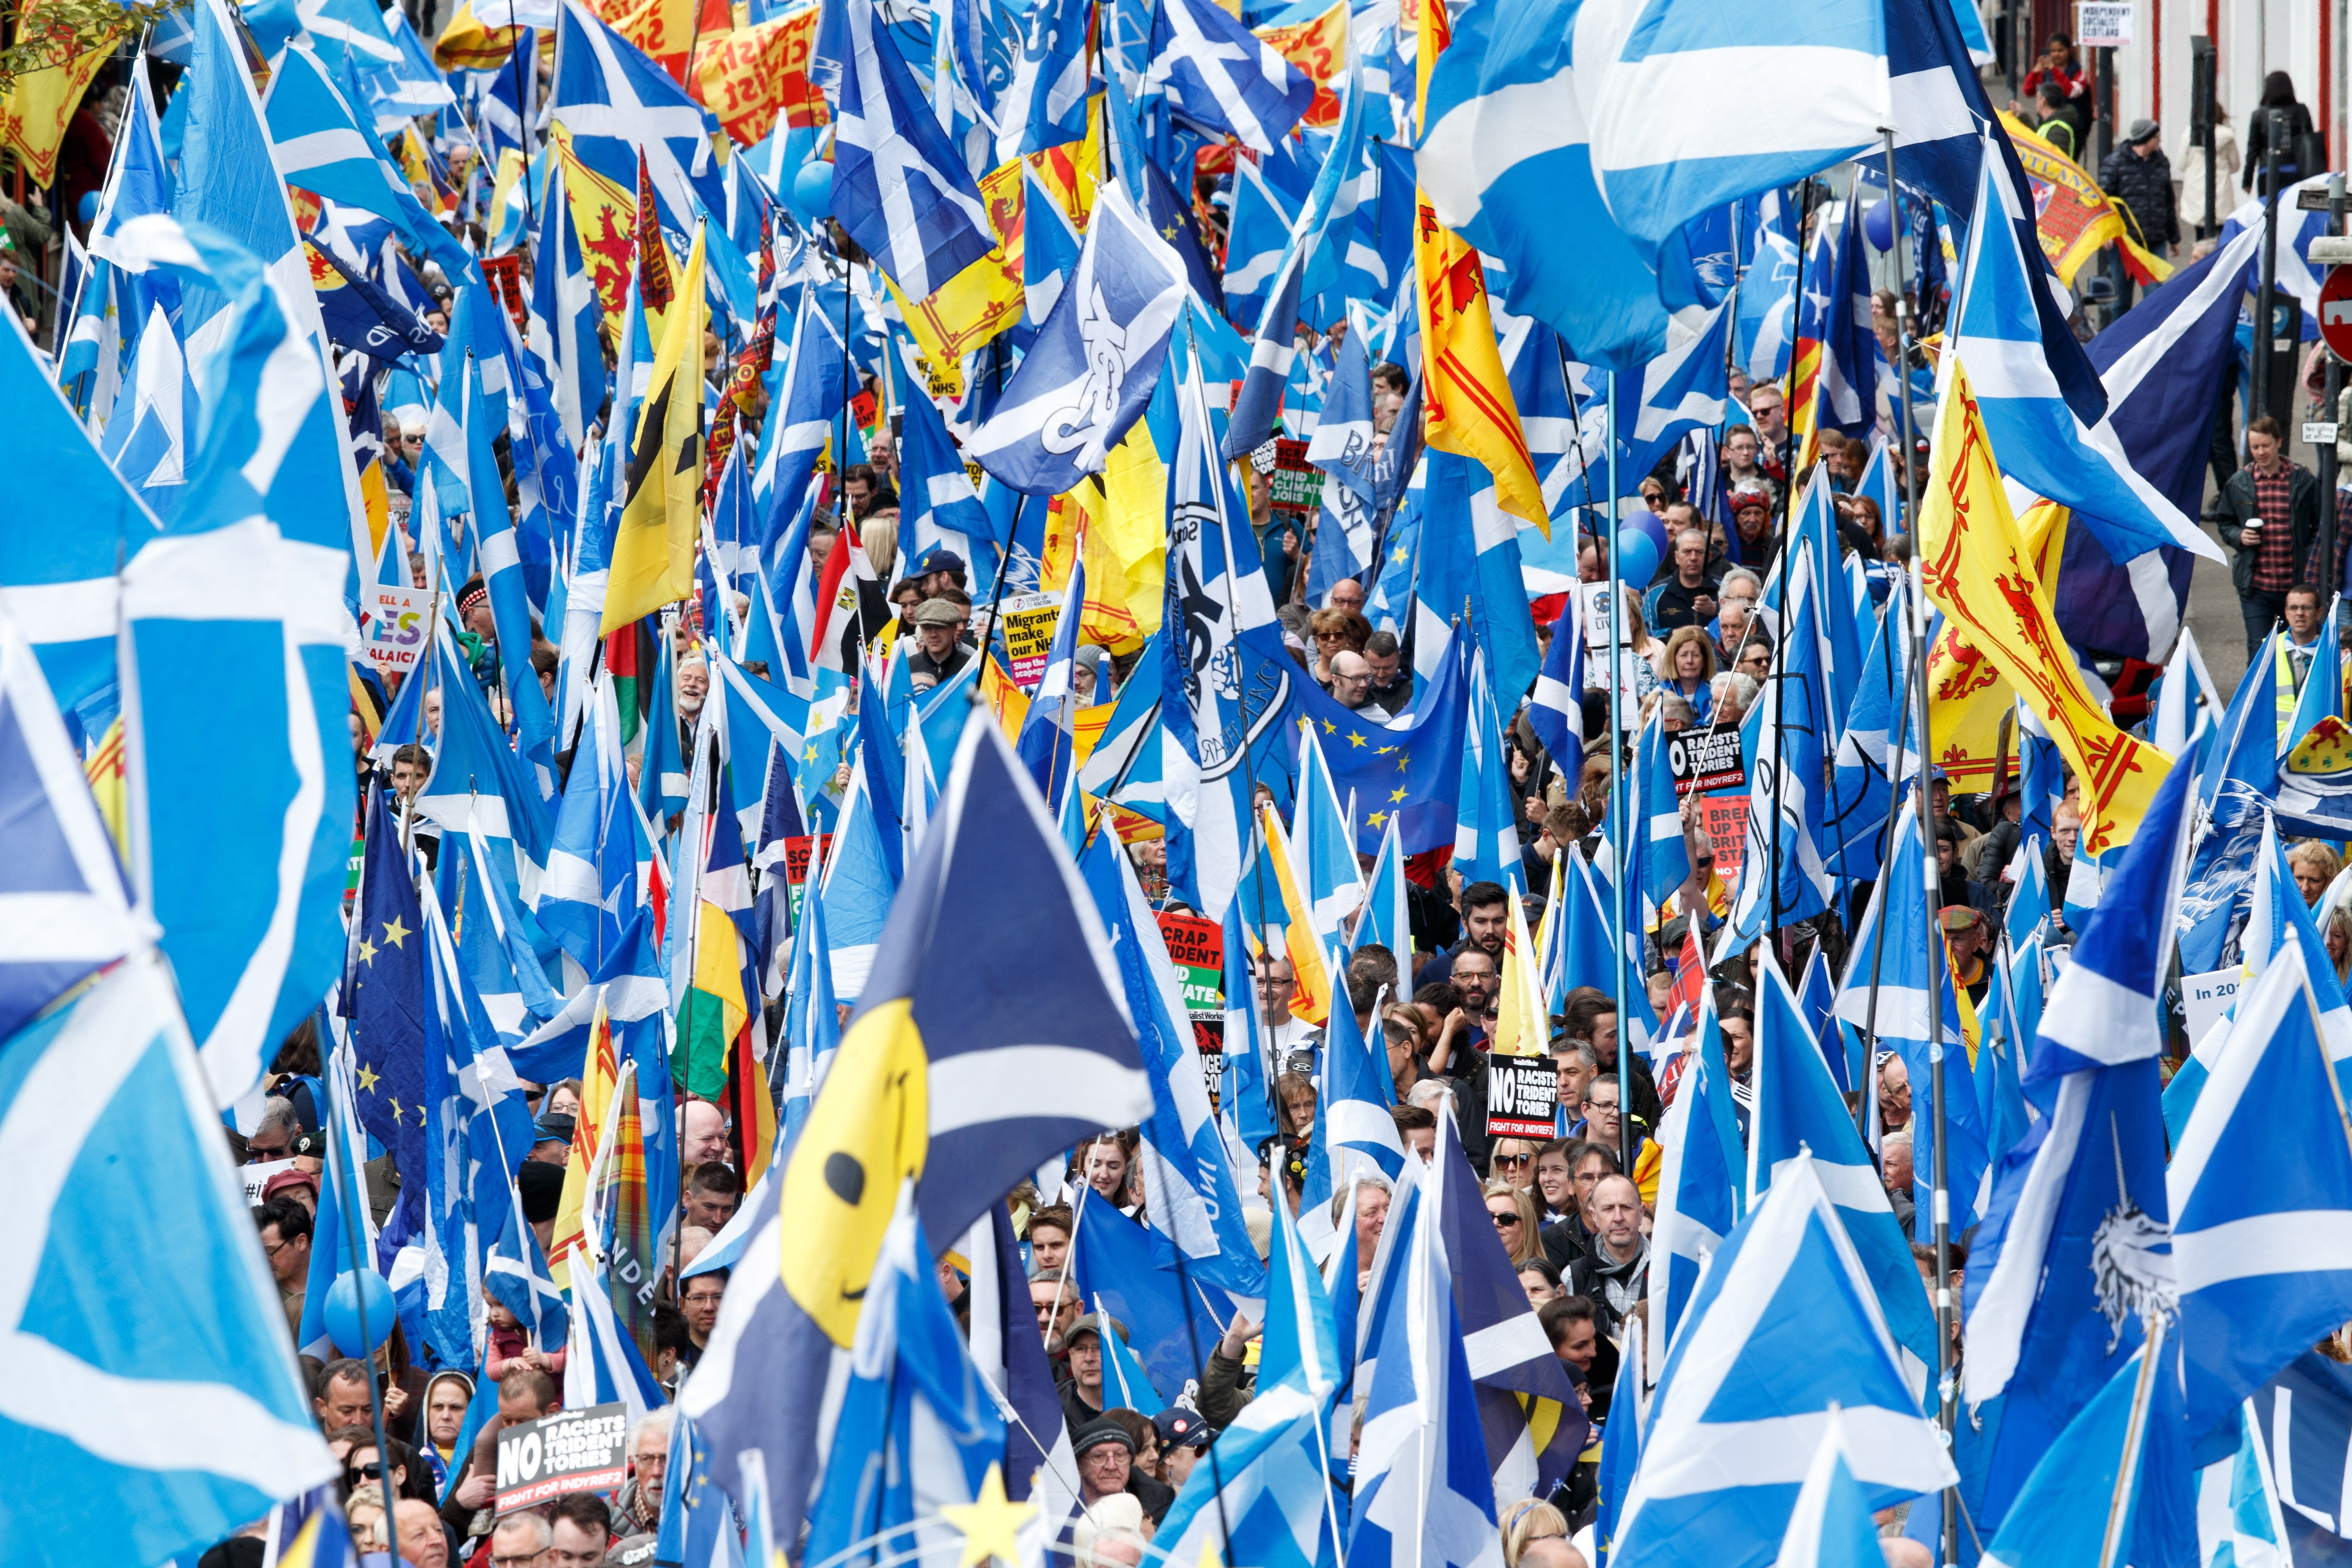 Thousands join Glasgow march for Scotland independence | South China